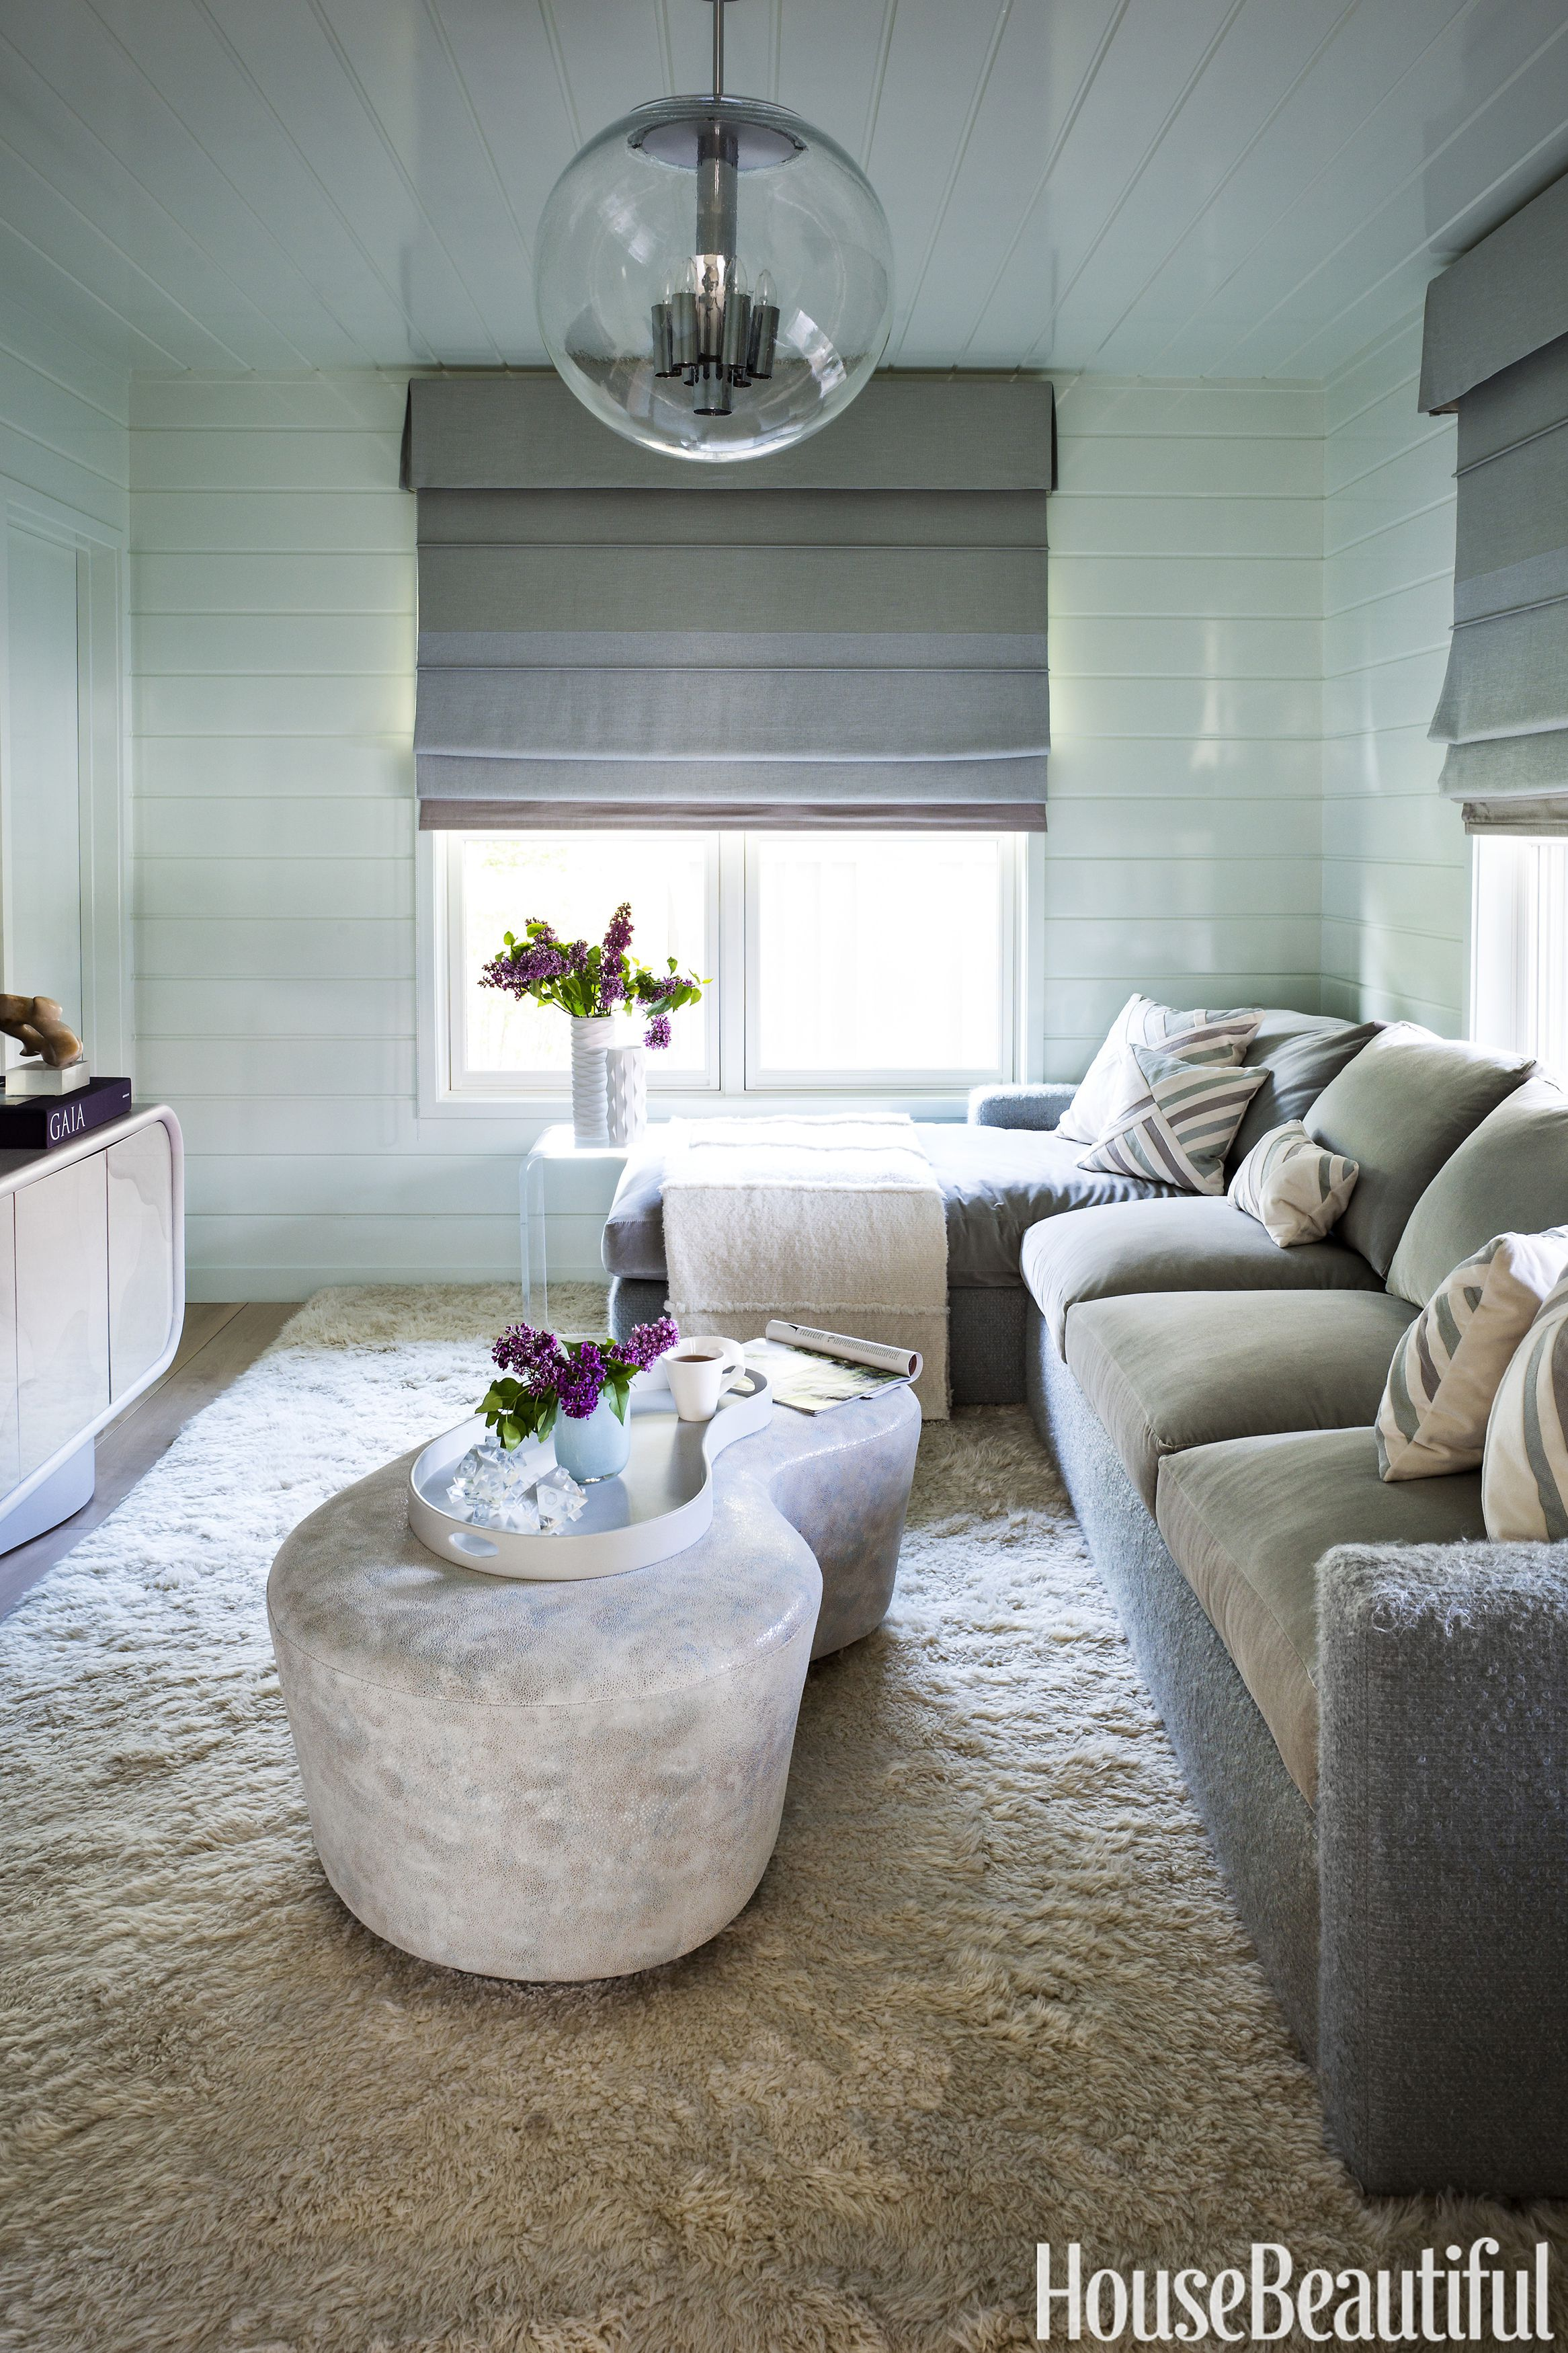 31 Stylish Family Room Design Ideas - Easy Decorating Tips for Family Rooms